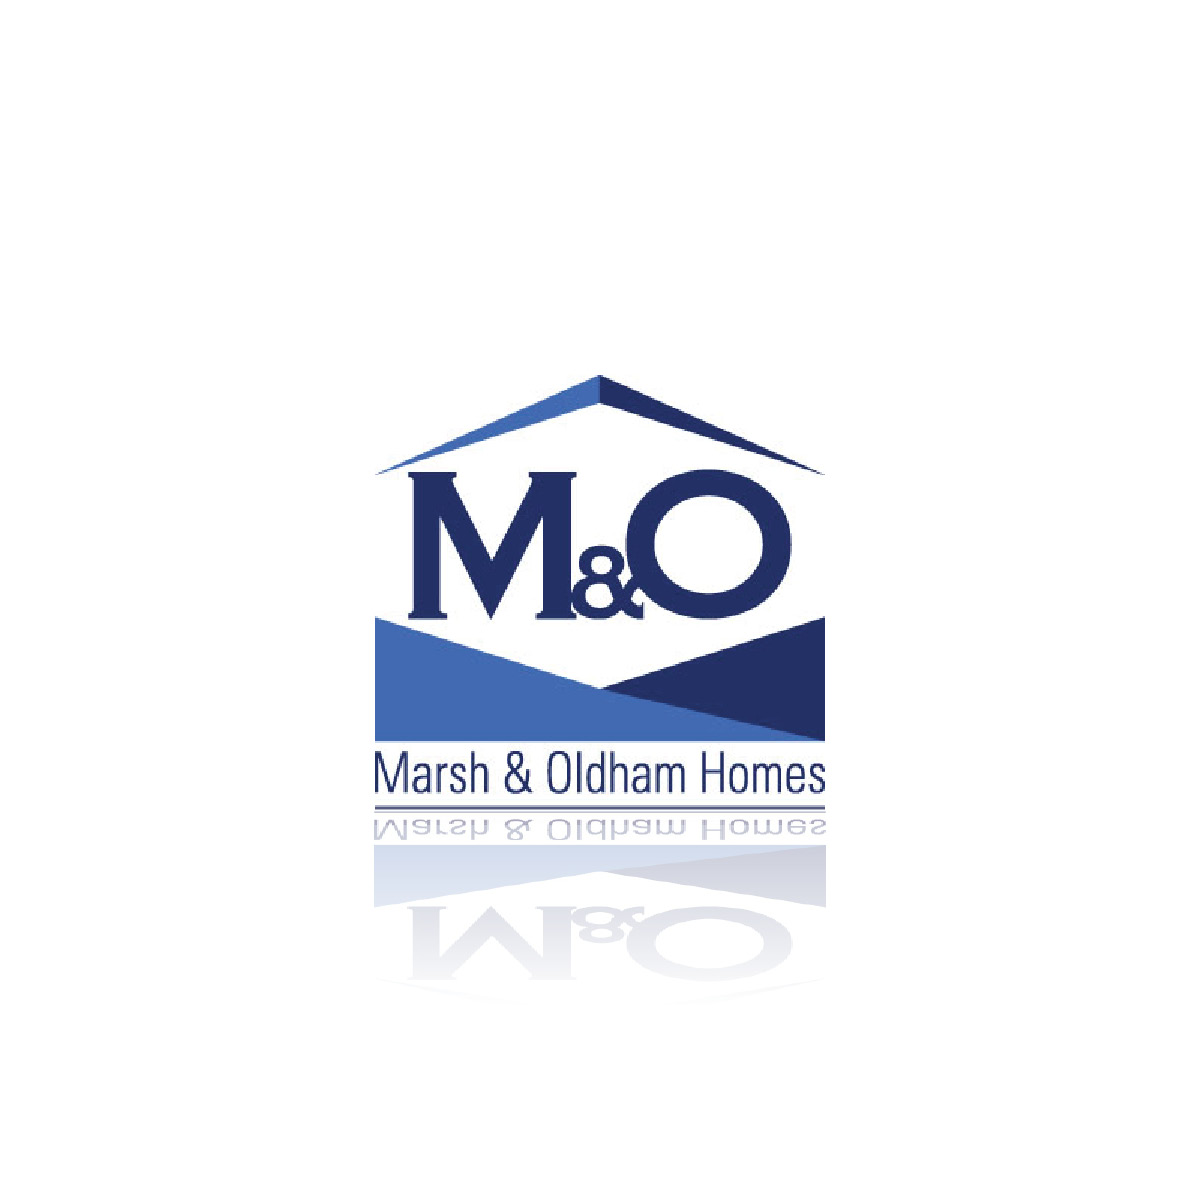 Logo Design by ISaac Law - Entry No. 120 in the Logo Design Contest Artistic Logo Design for Marsh & Oldham Homes.